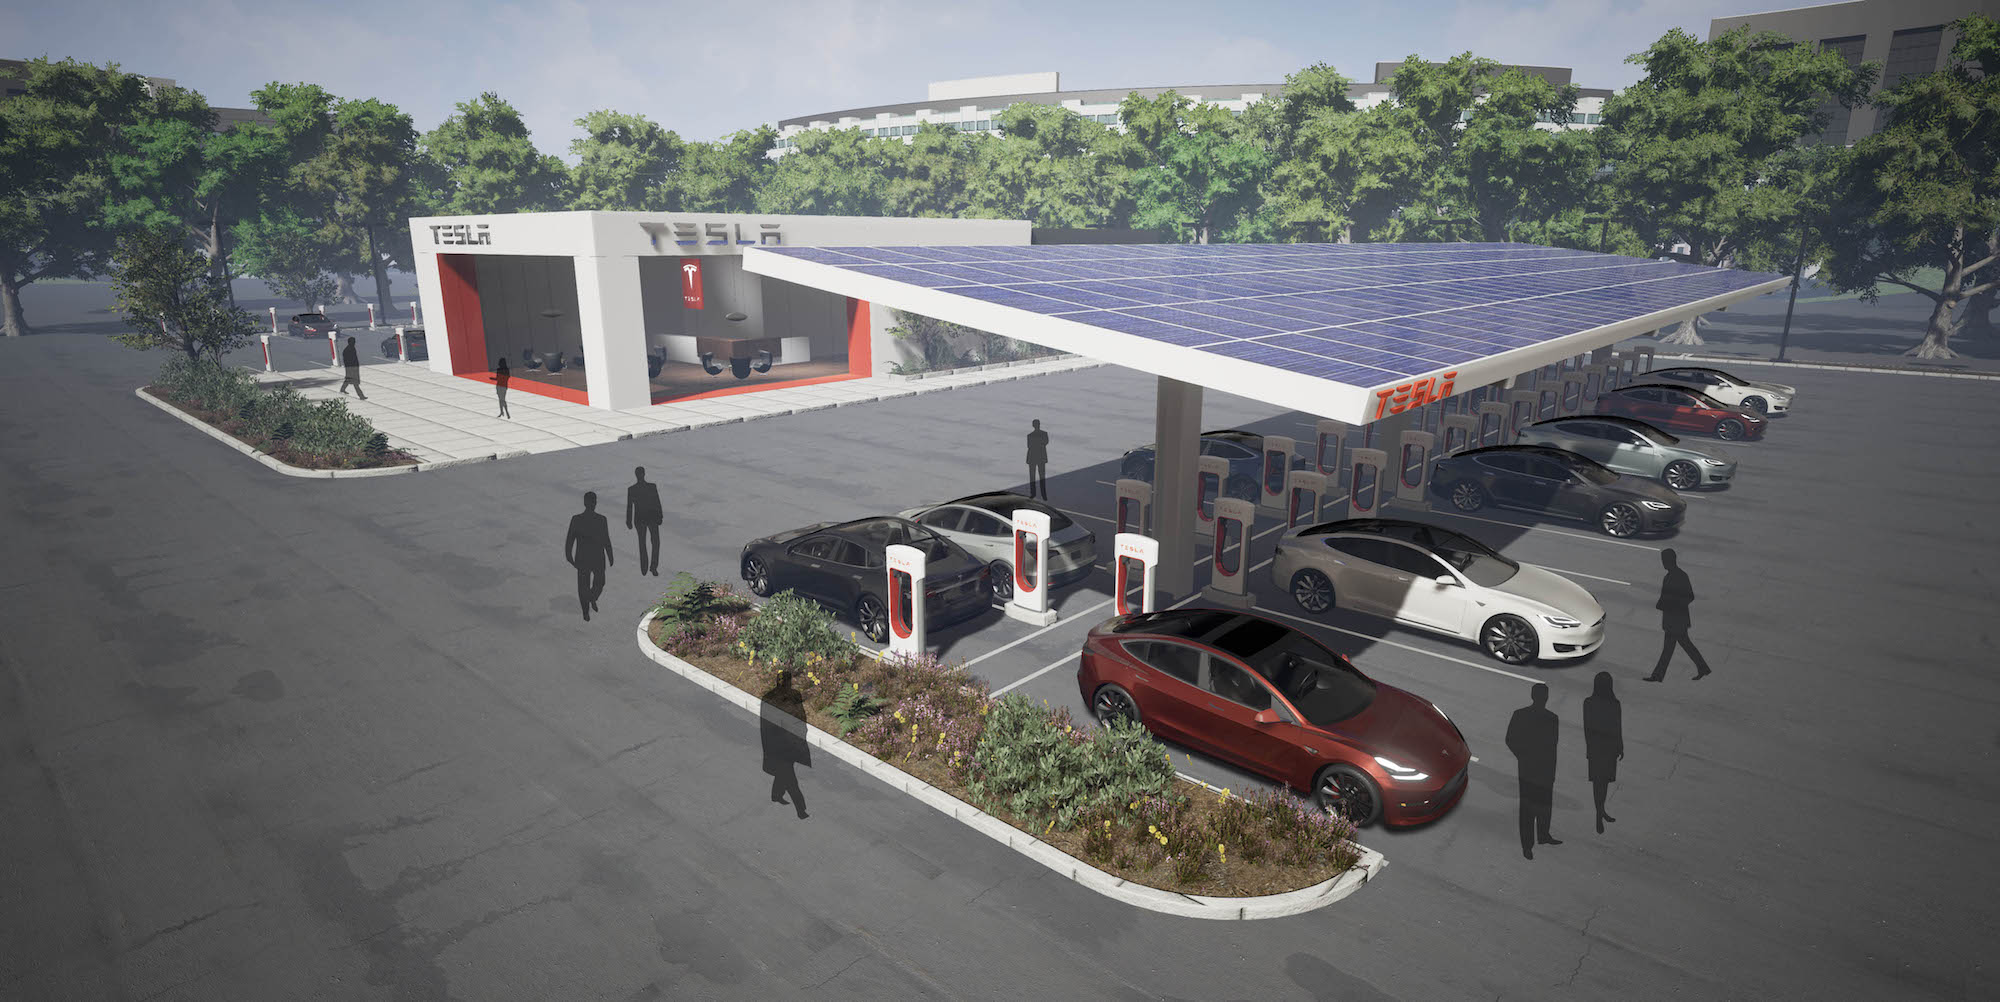 tesla-supercharger-solar-panel-canopy